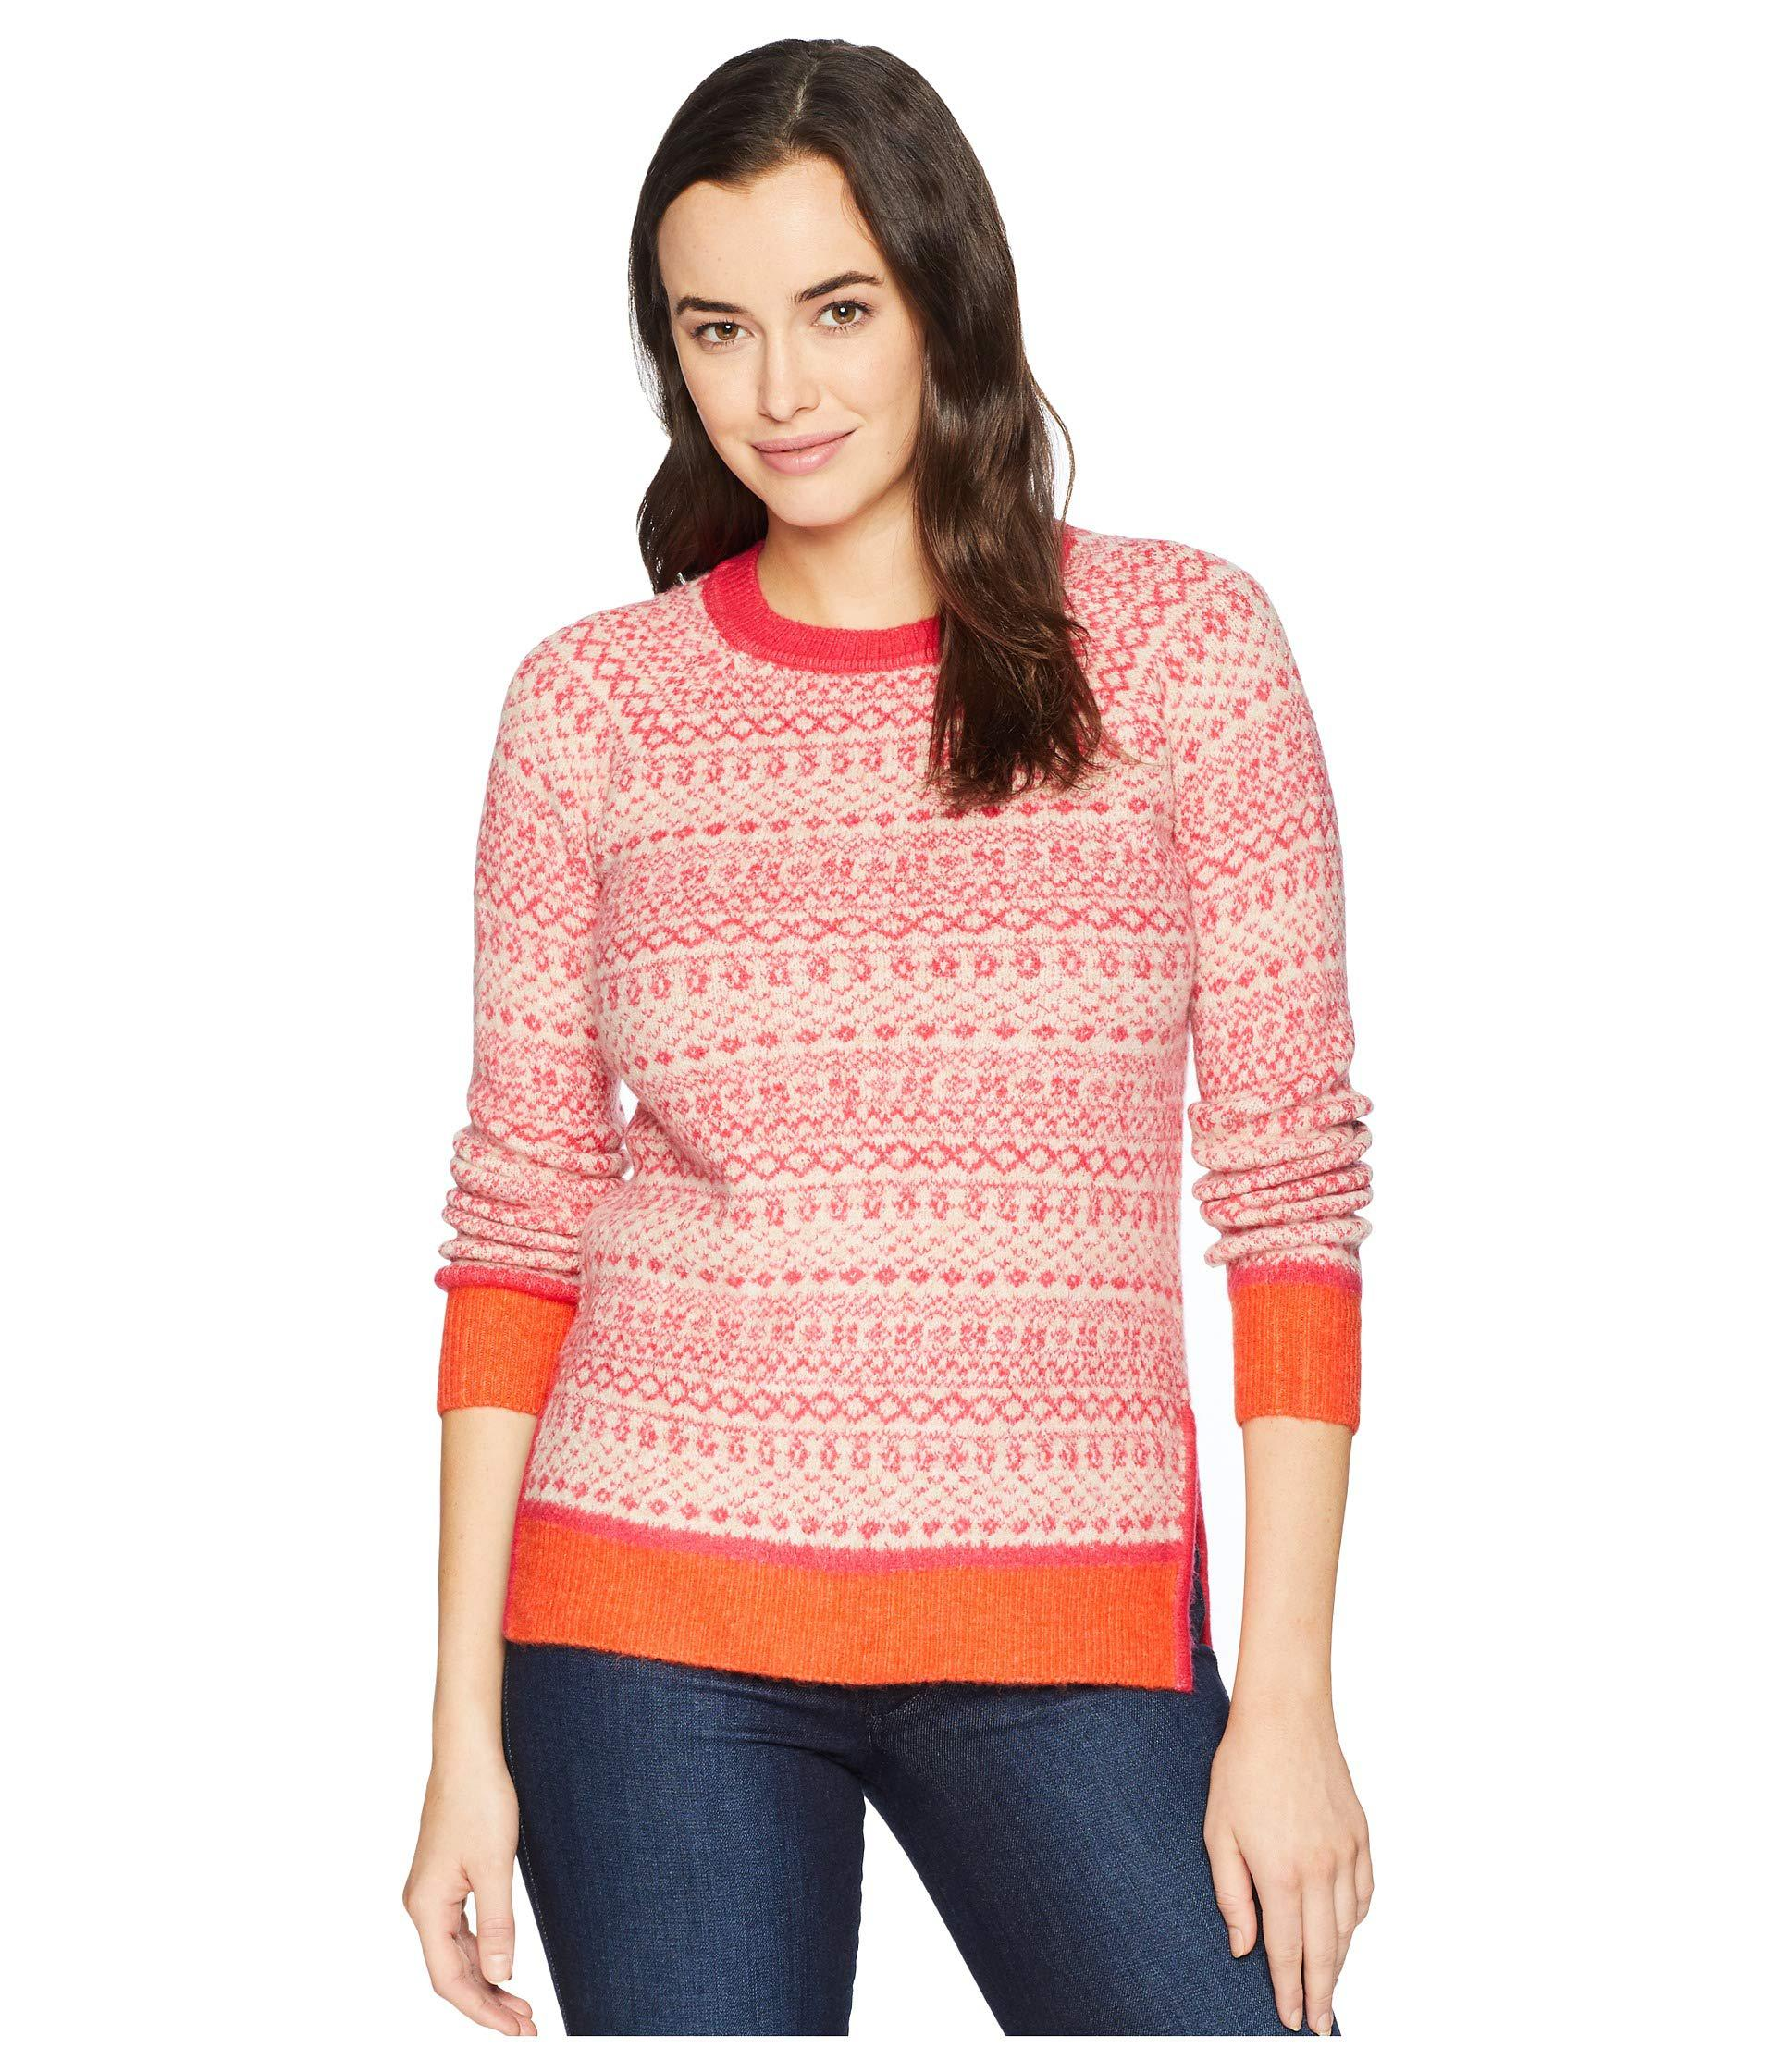 cb63684217c7 Lyst - Joules Justina Fair Isle Hem Sweater in Pink - Save ...